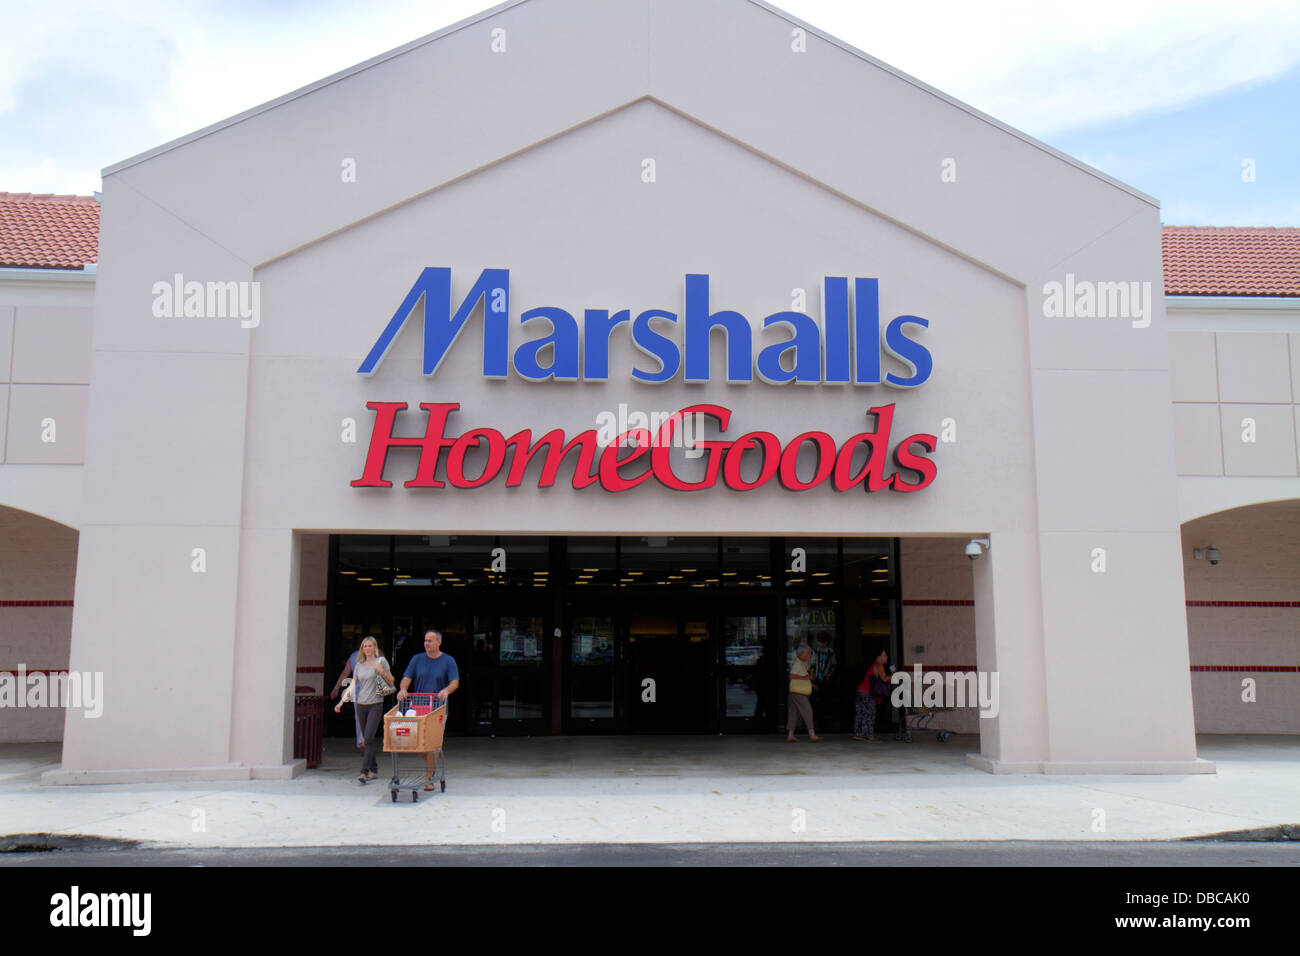 Miami Florida Aventura Marshalls Home Goods discount department store front  entrance. Miami Florida Aventura Marshalls Home Goods discount department